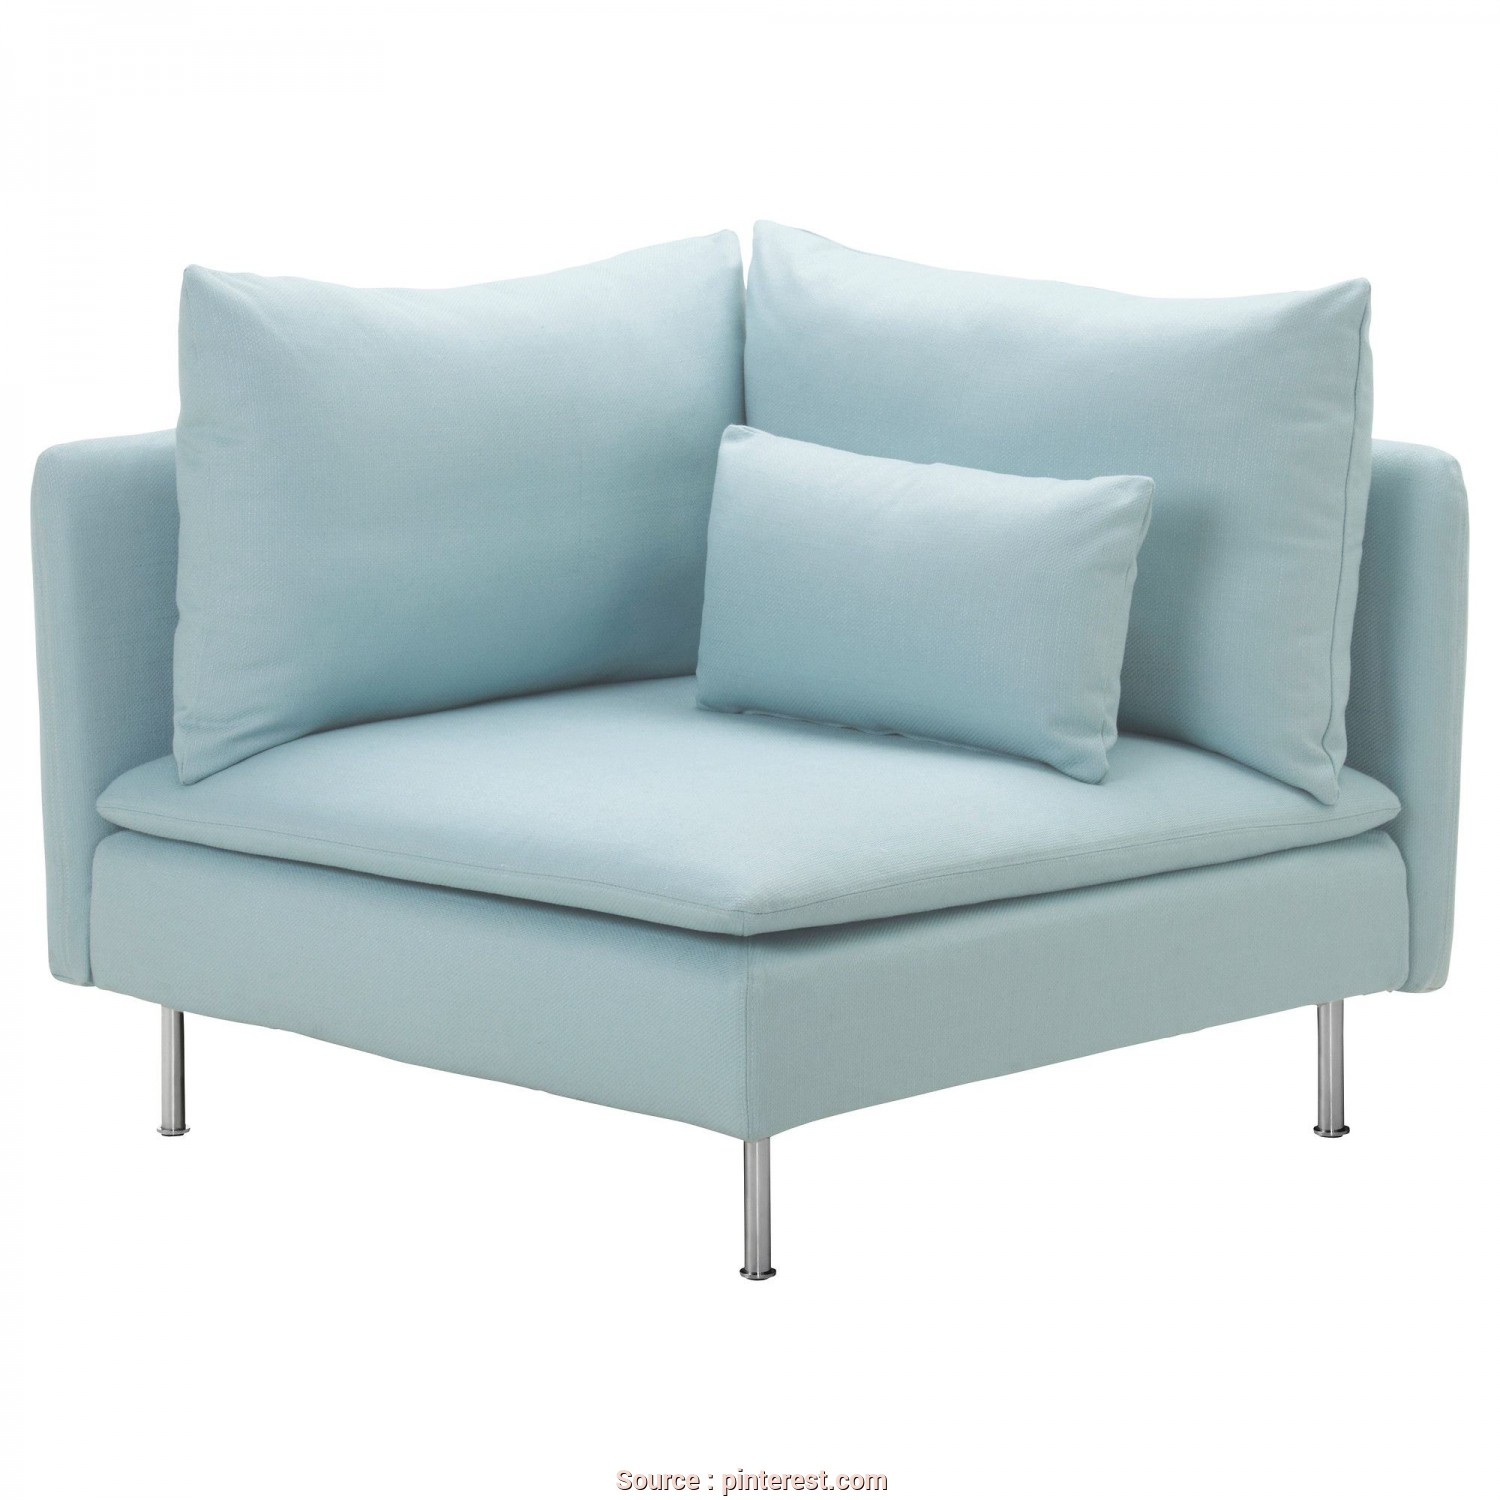 Futon Ikea Segunda Mano, Superiore SÖDERHAMN Corner Section, Isefall Light Turquoise, IKEA Comes In 5 Different Colors, $200.00